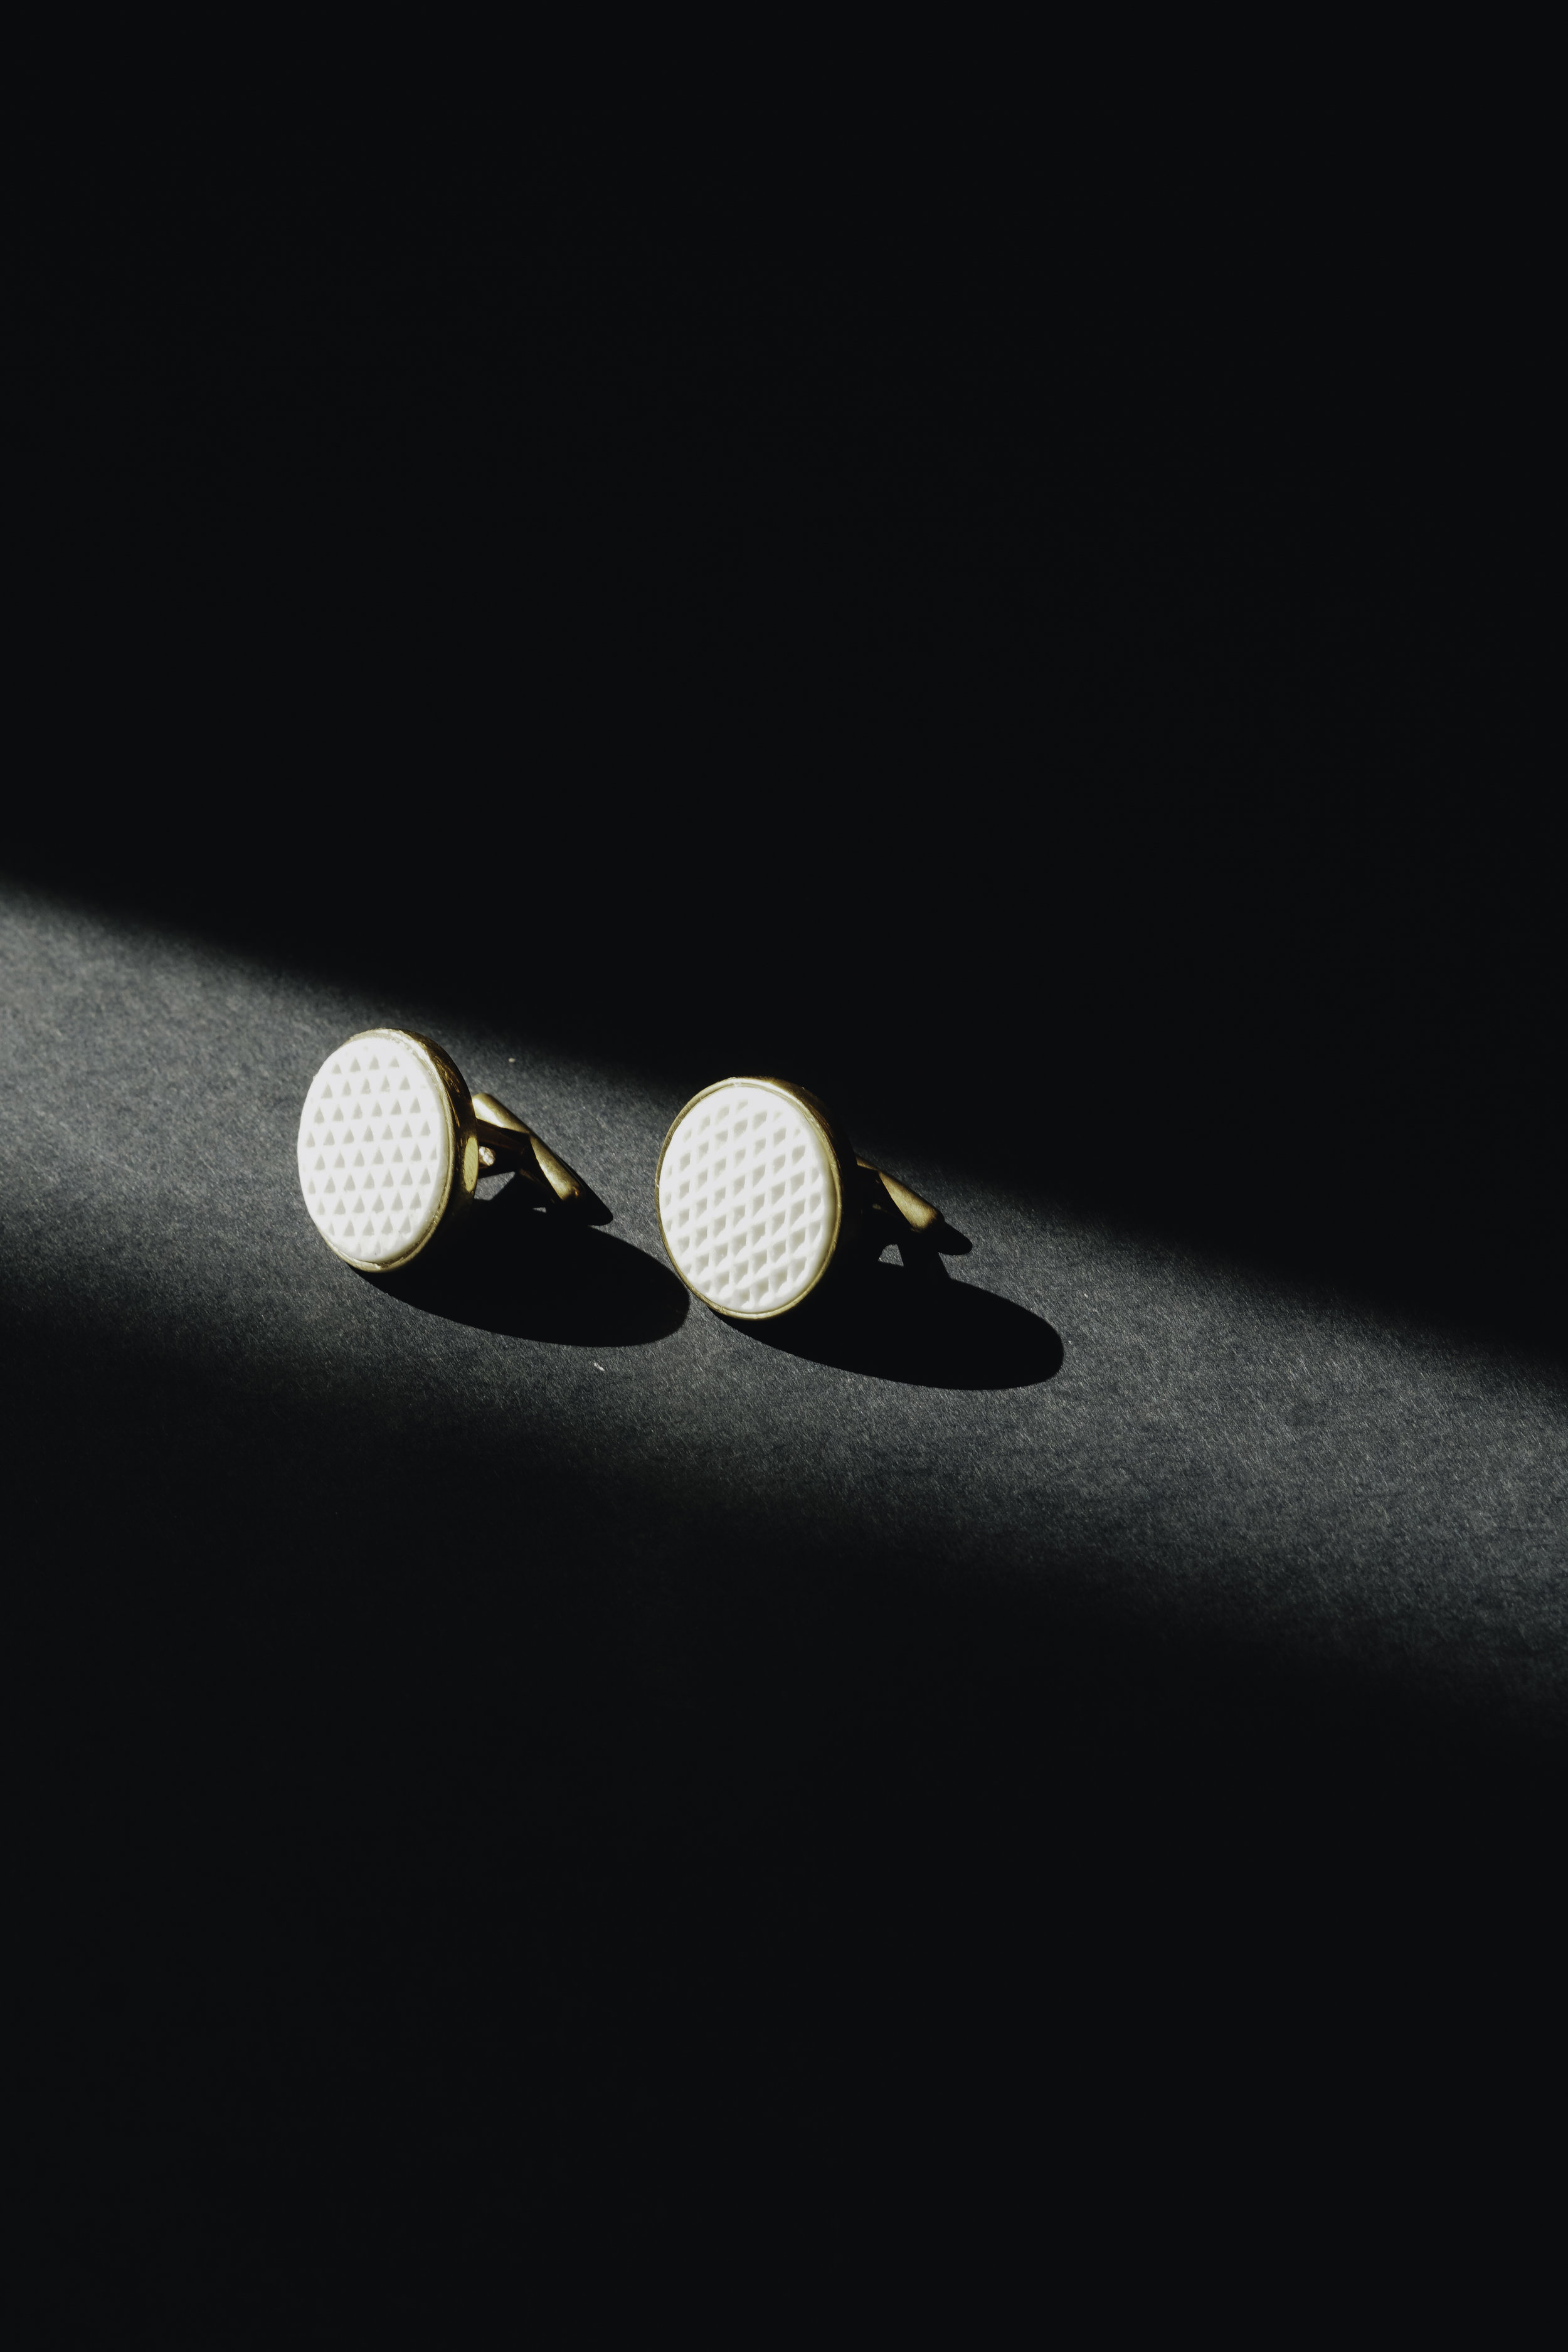 Anne Masters - Cuff links for that someone special$90